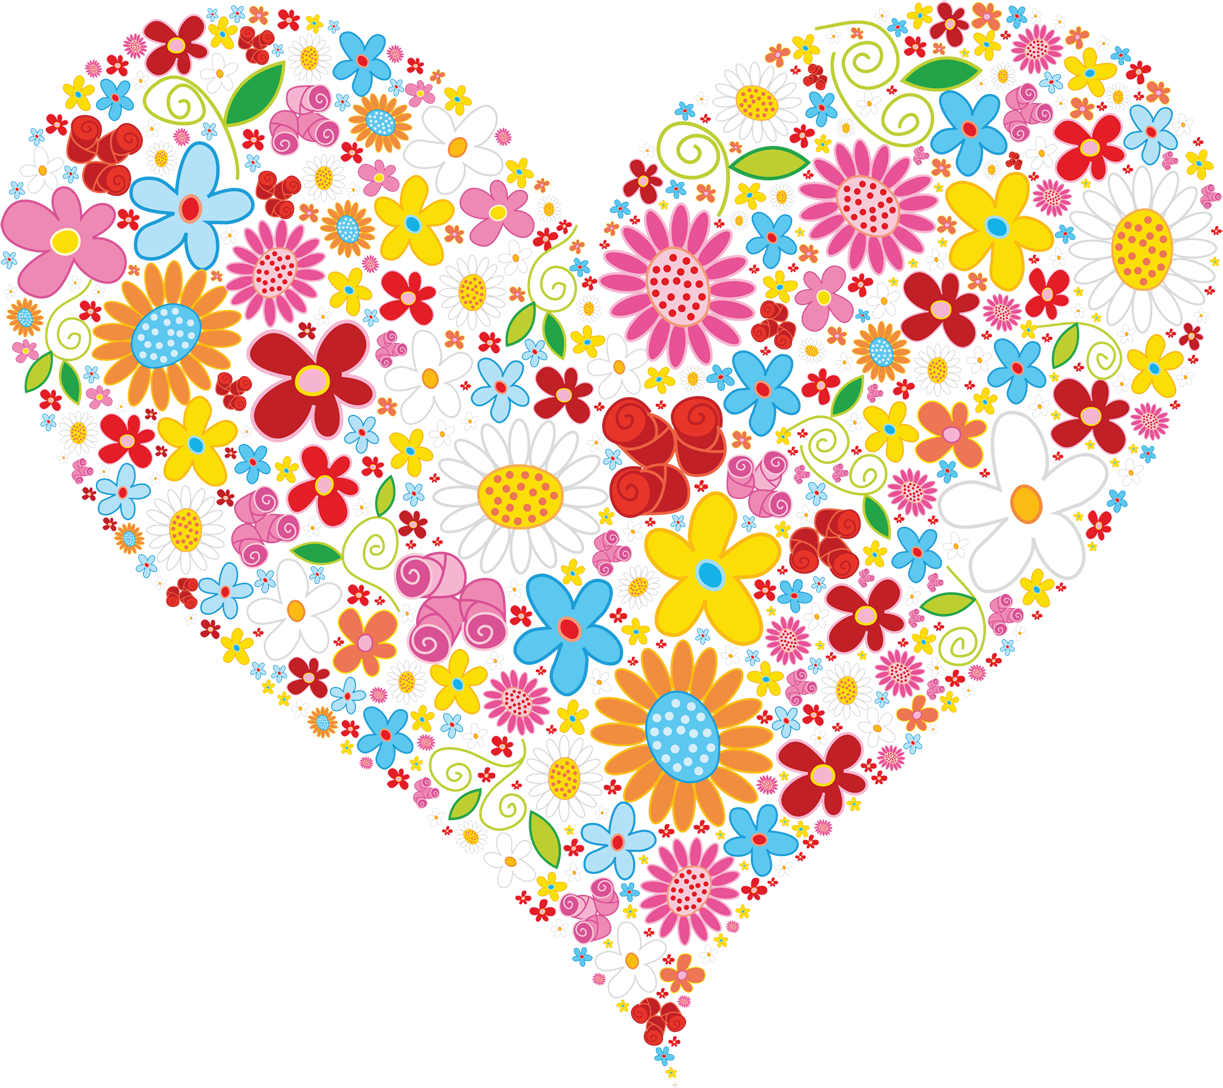 Transparent heart clipart free stock Hearts and flowers clipart - ClipartFest free stock